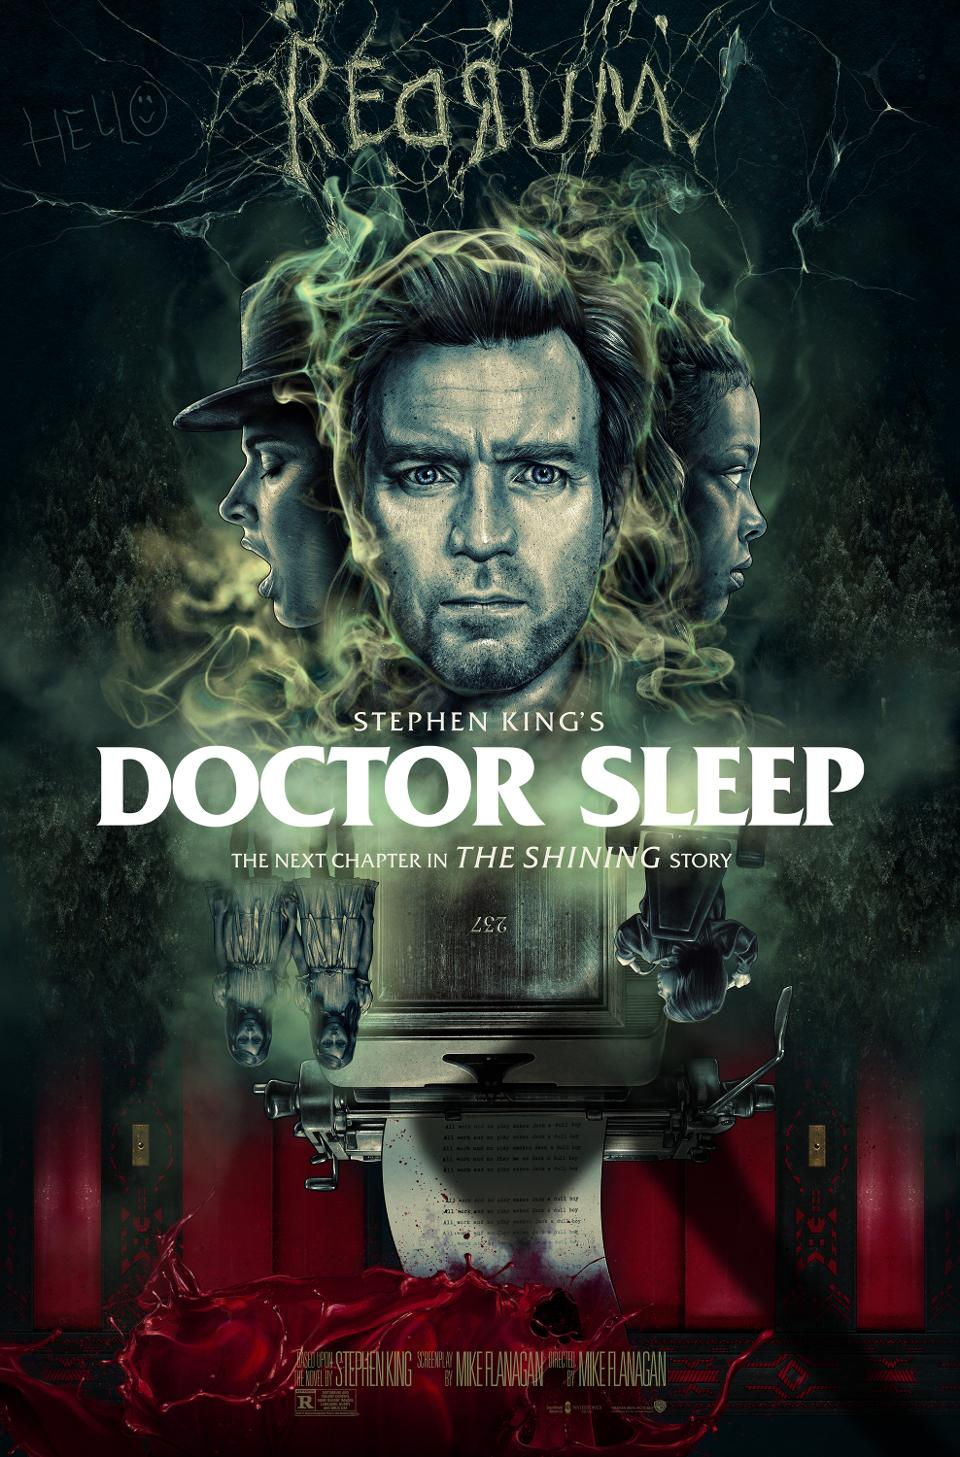 Doctor Sleep poster reveals Danny and Abra, along with the antagonist Rose